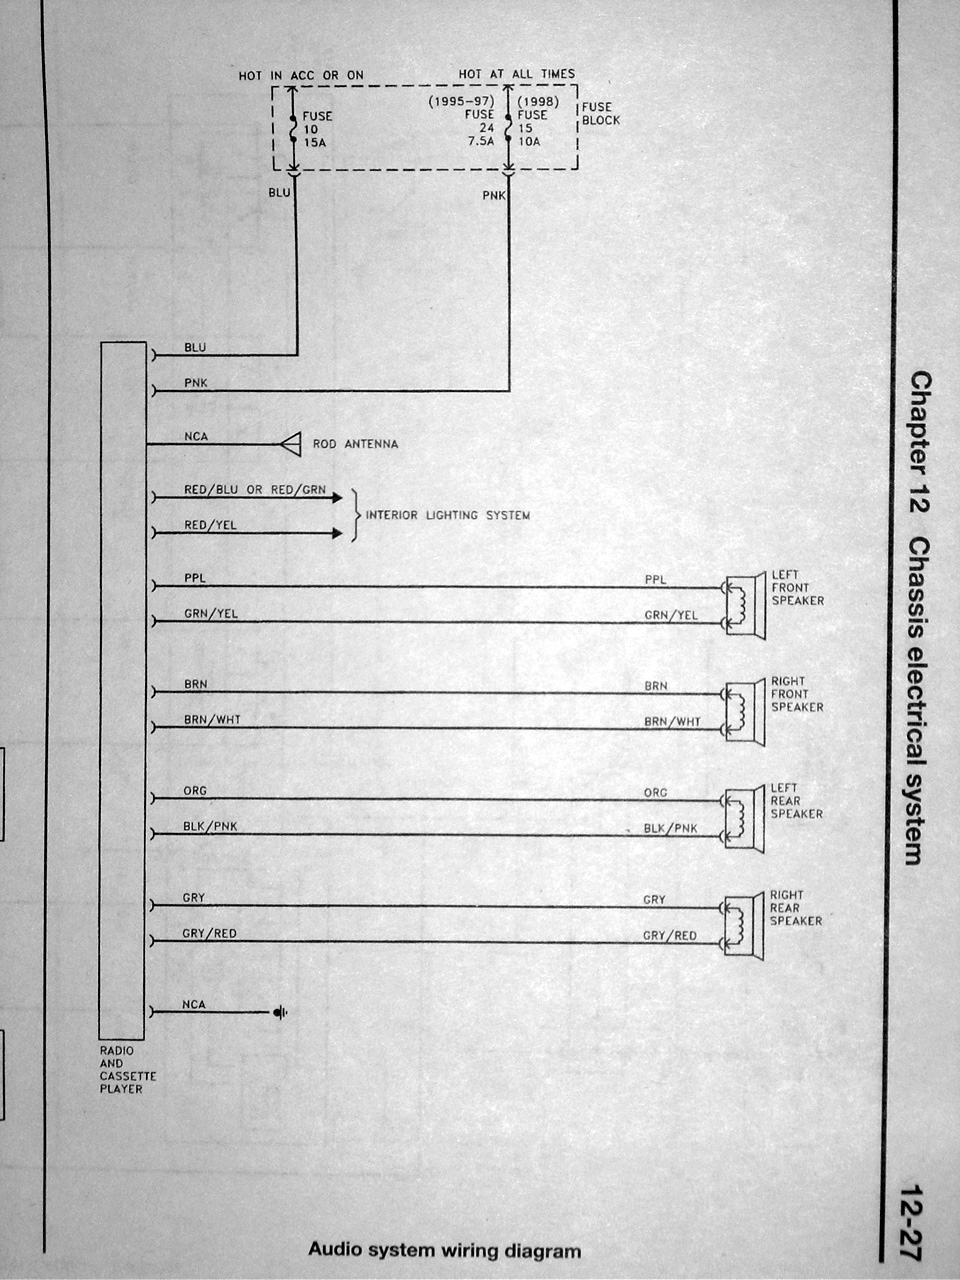 DSC01849 wiring diagram thread *useful info* nissan forum 1998 nissan frontier radio wiring diagram at edmiracle.co